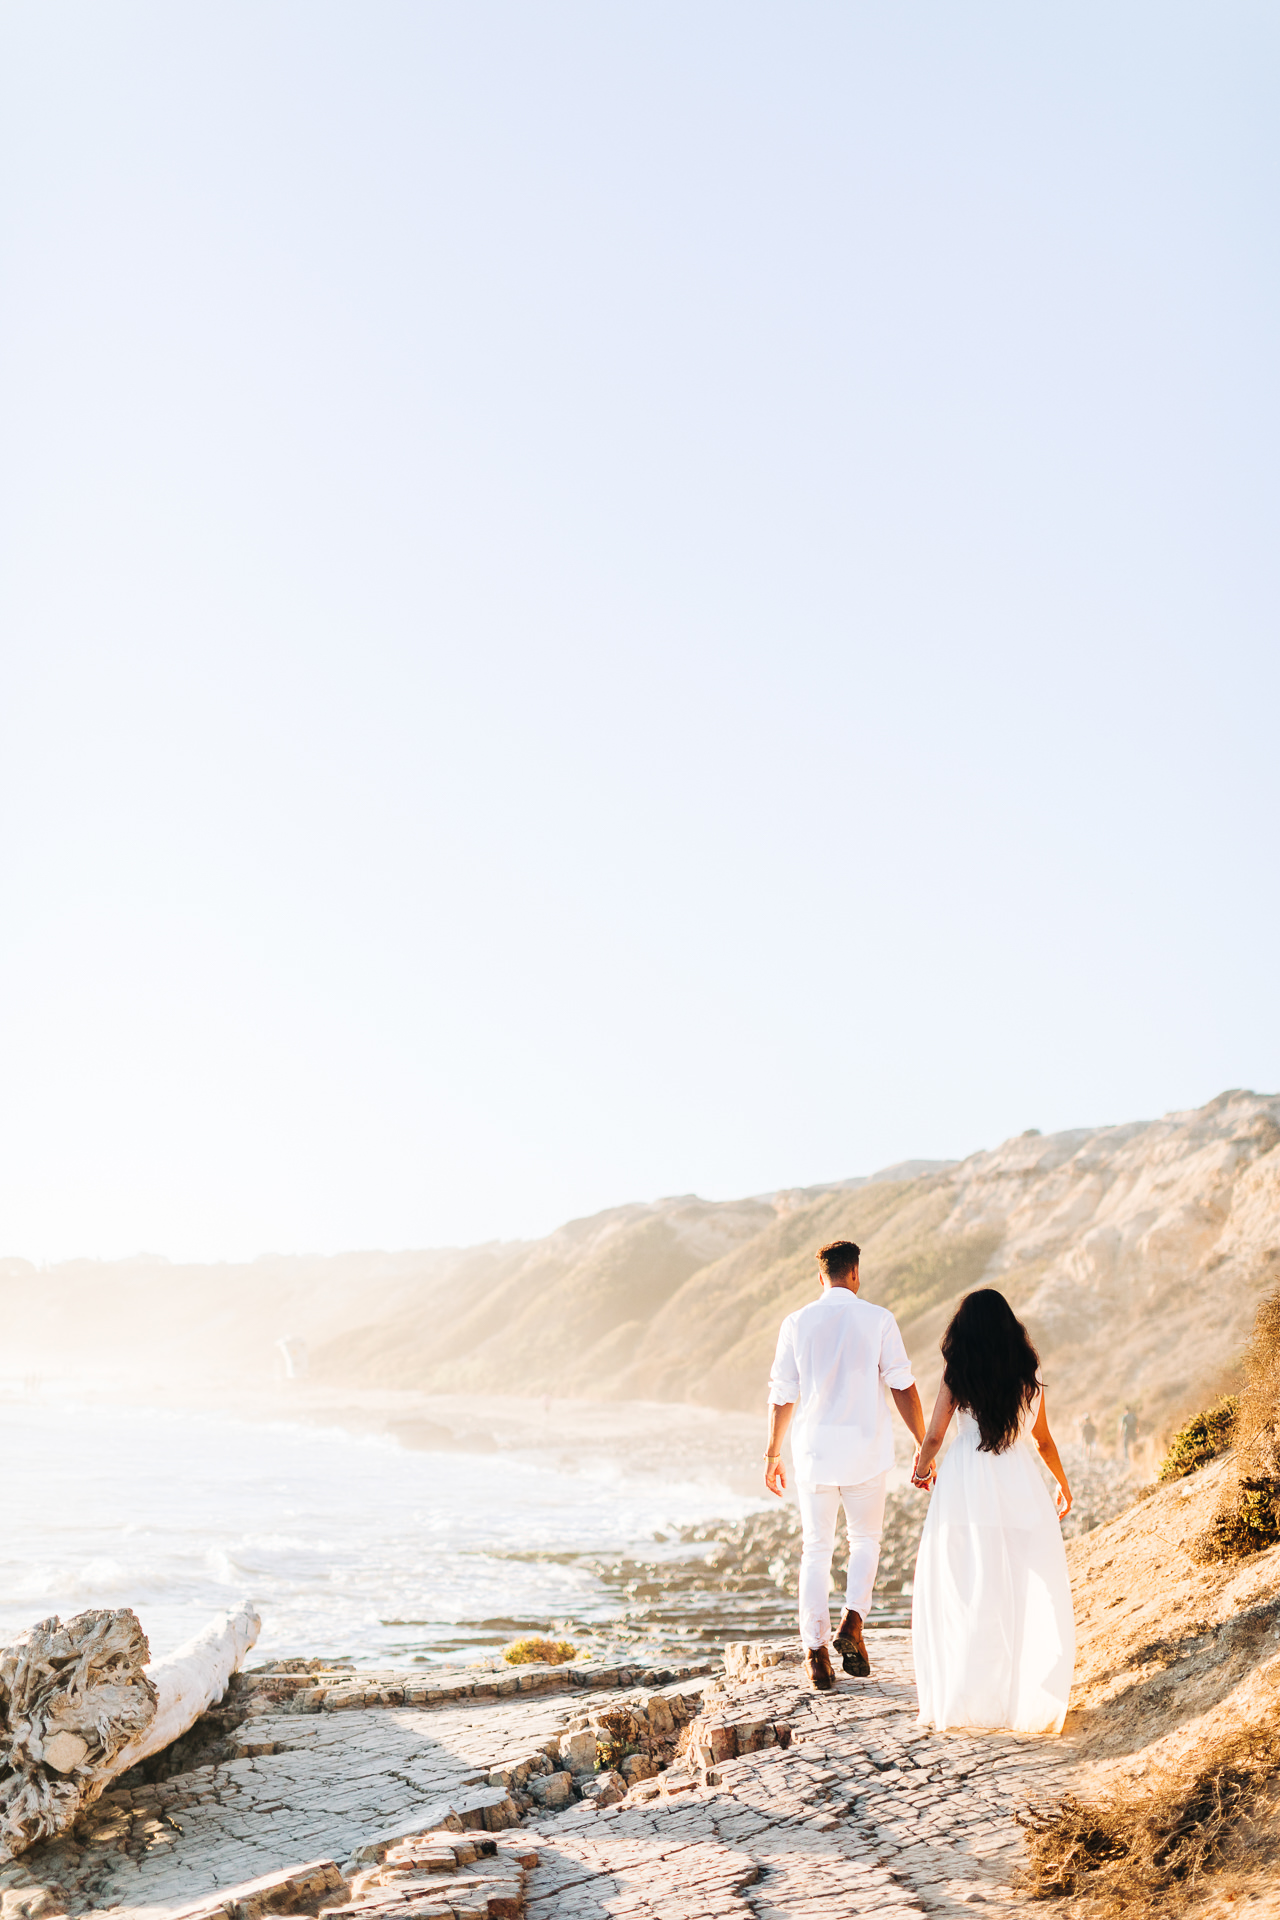 Nanis&Jay-Crystal-Cove-Beach-Engagement-Session-Clarisse-Rae-Photo-&-Video-Orange-County-Wedding-Photographer-&-Videographer_36